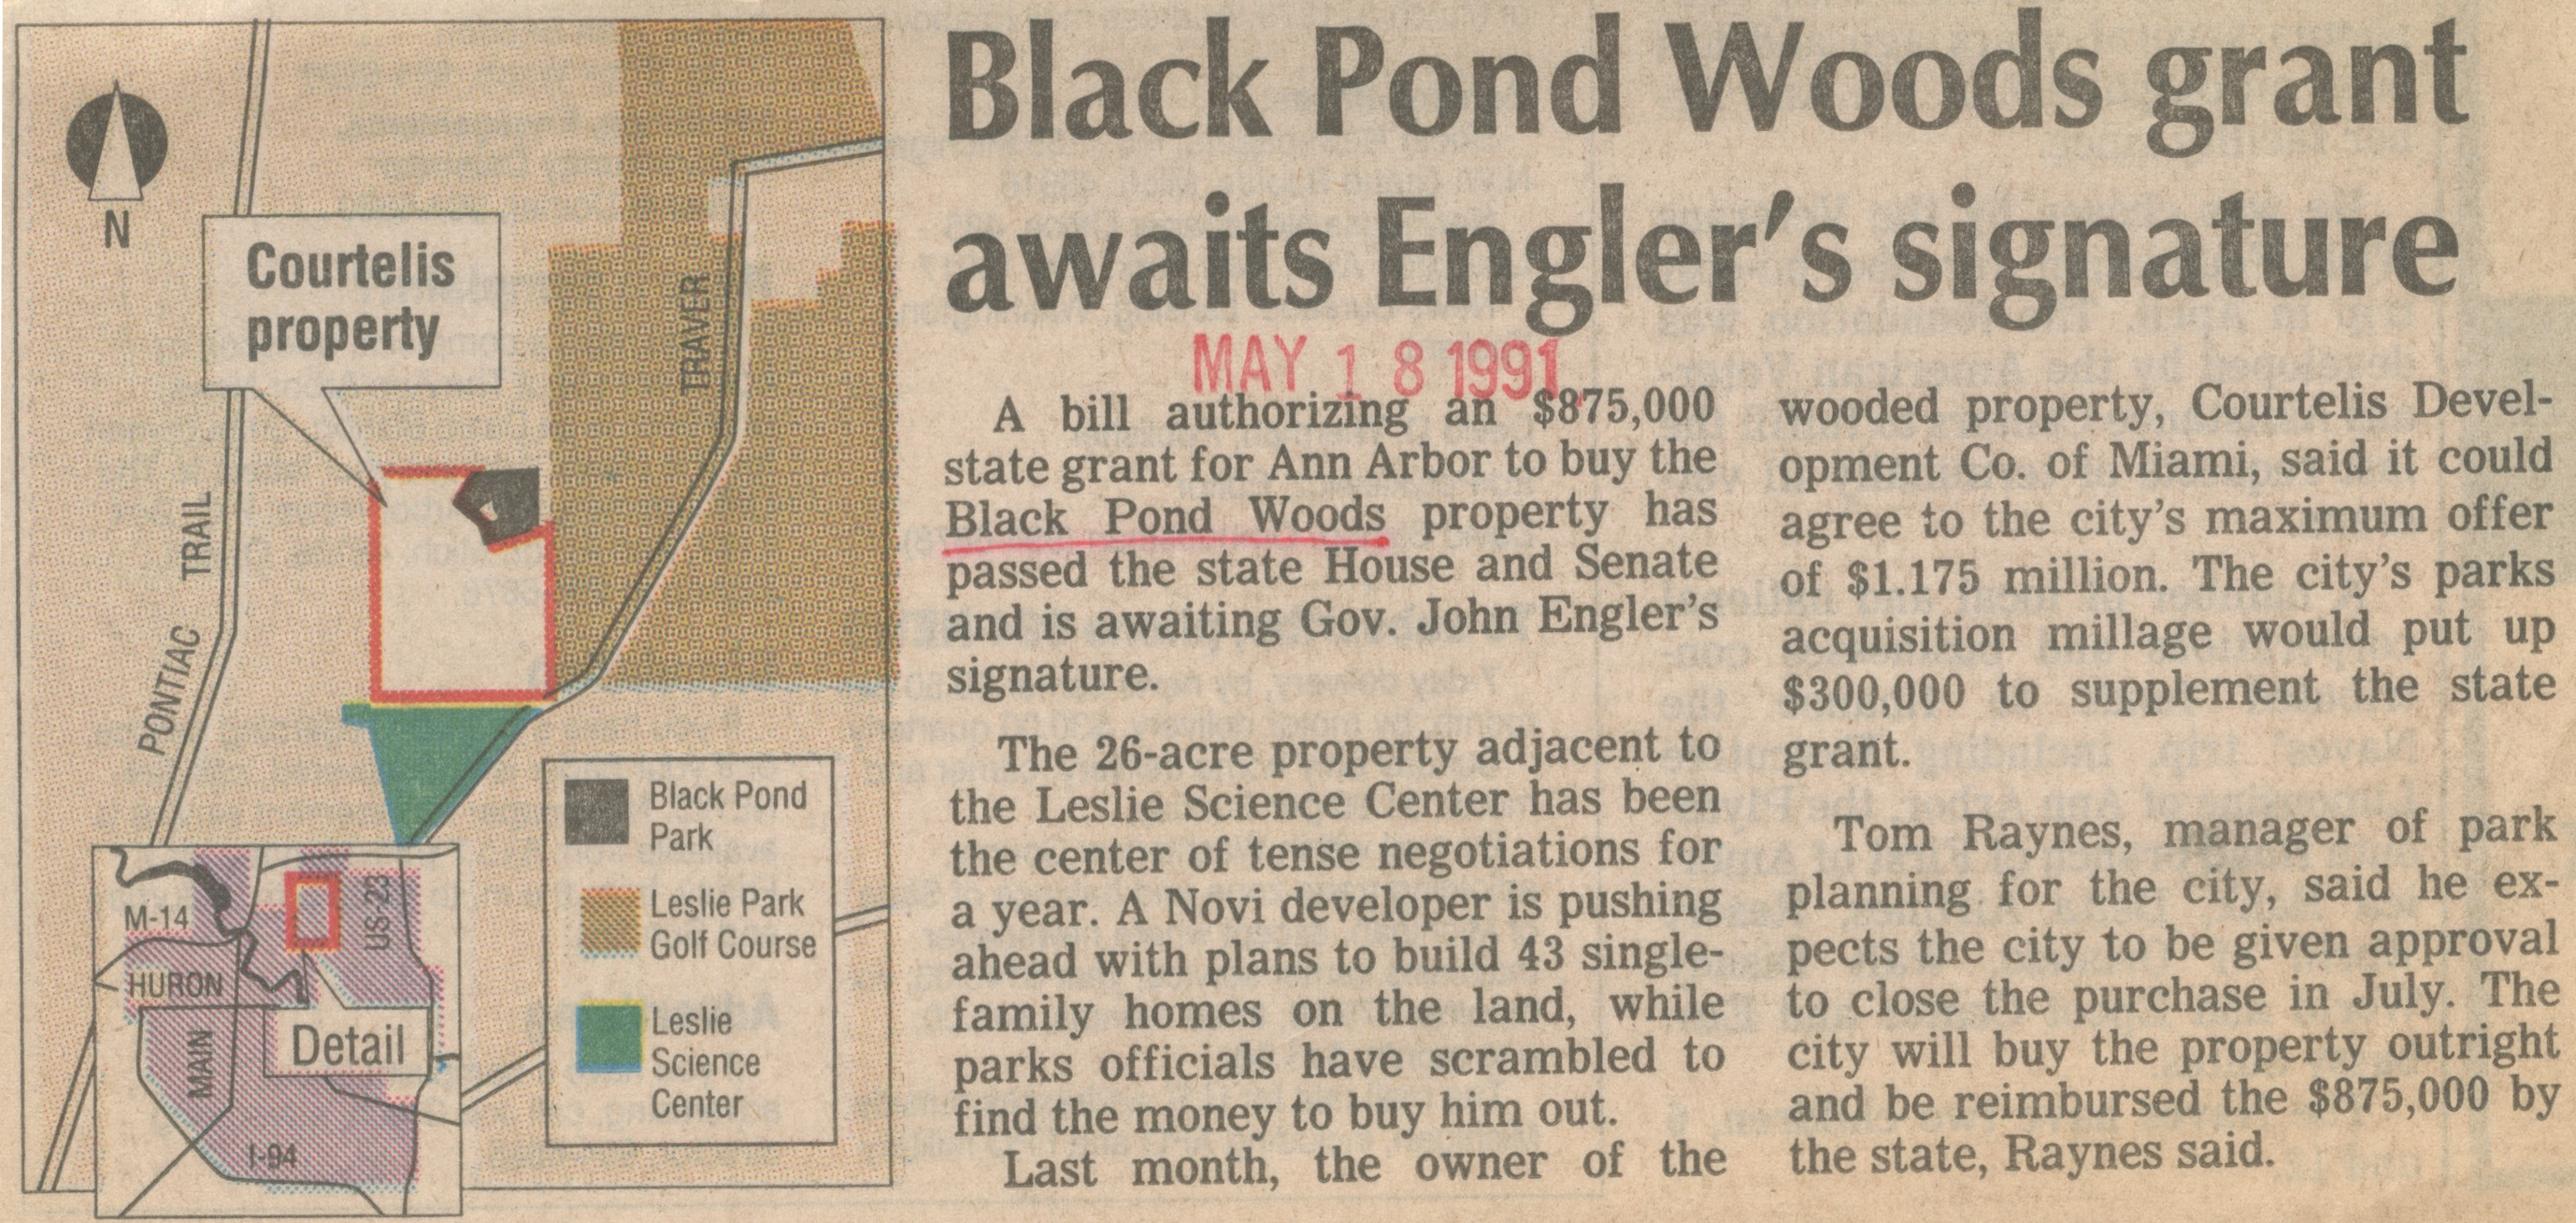 Black Pond Woods Grant Awaits Engler's Signature image